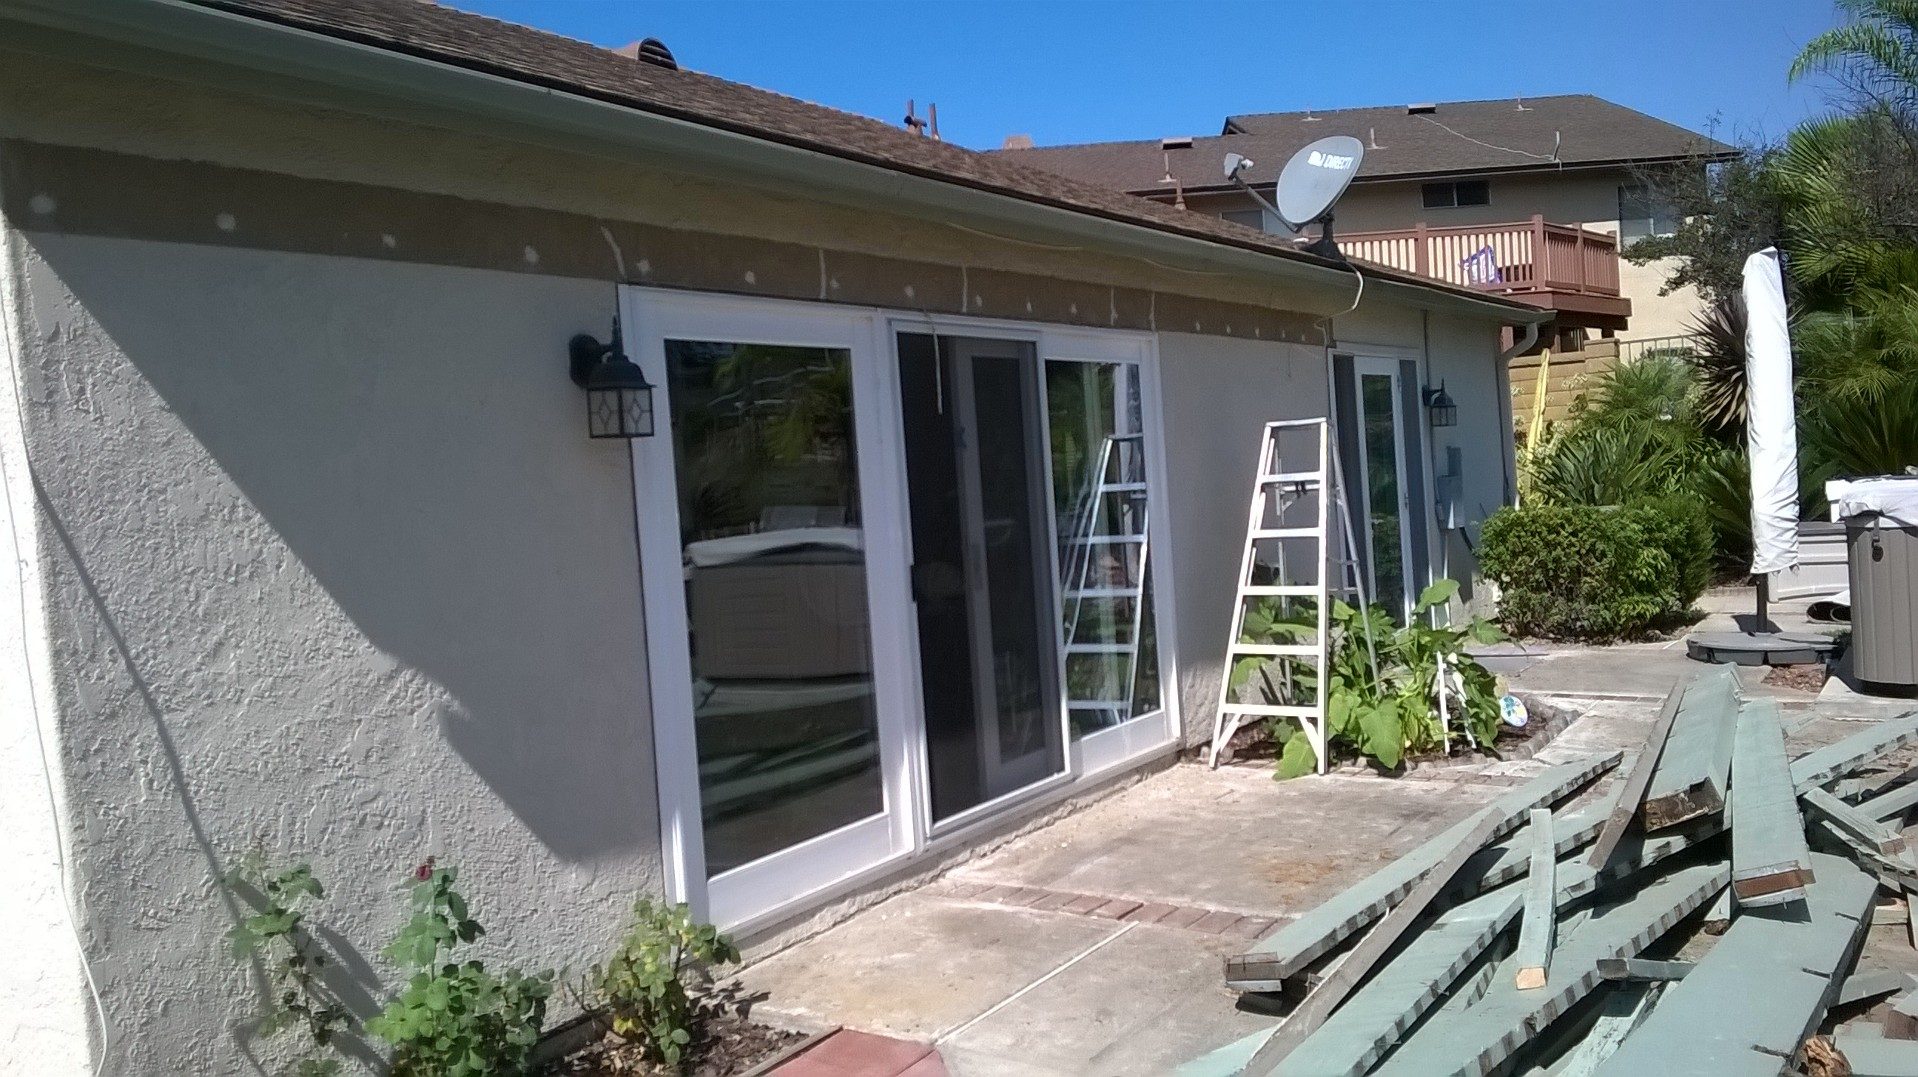 Mission Viejo Aluminum Patio Cover Project by the Patio Man